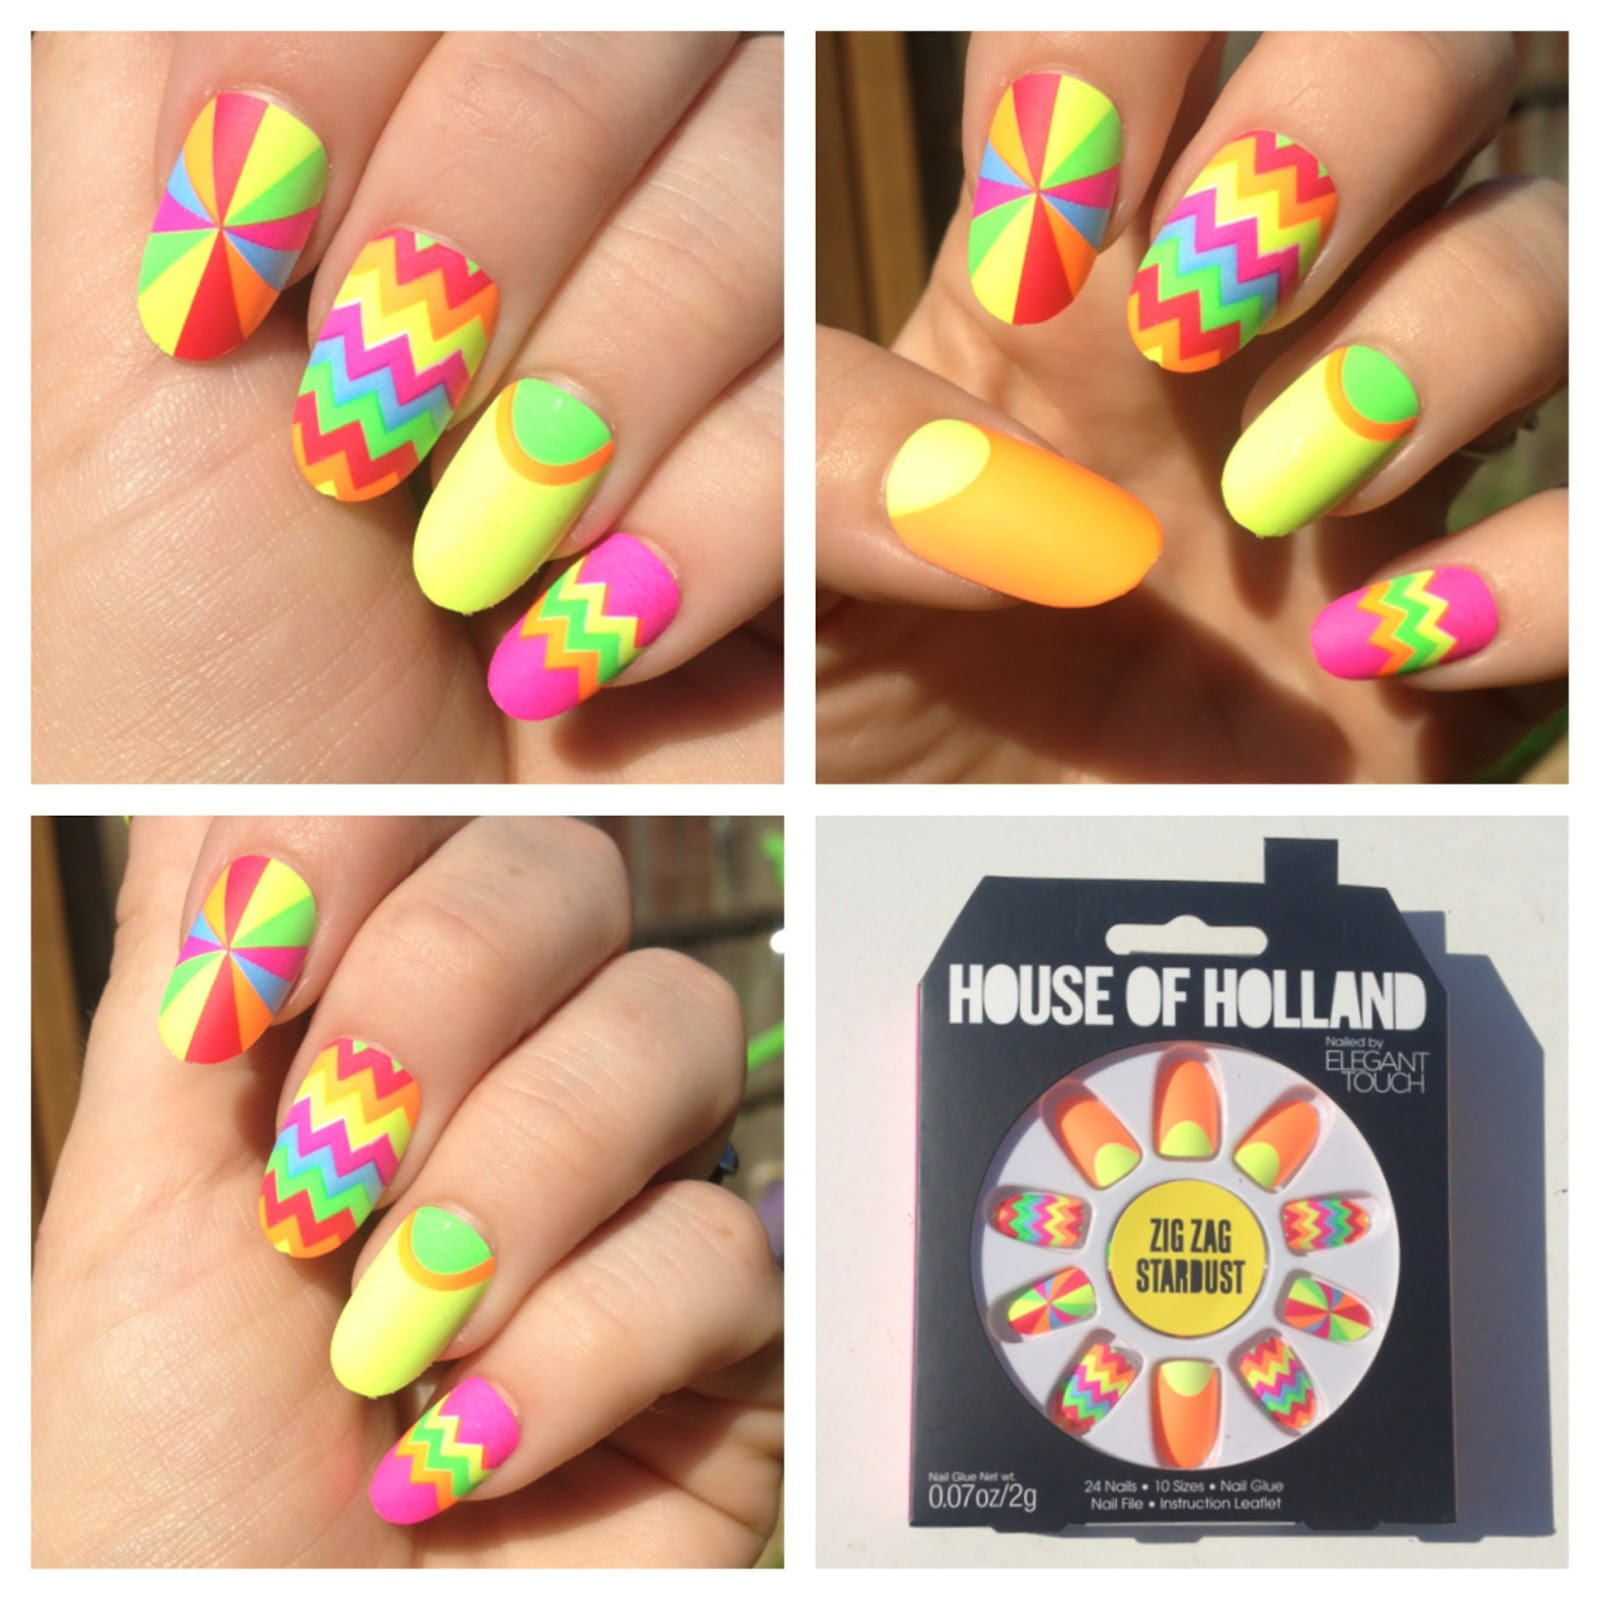 Nail Newbie: House of Holland Nails for Elegant Touch